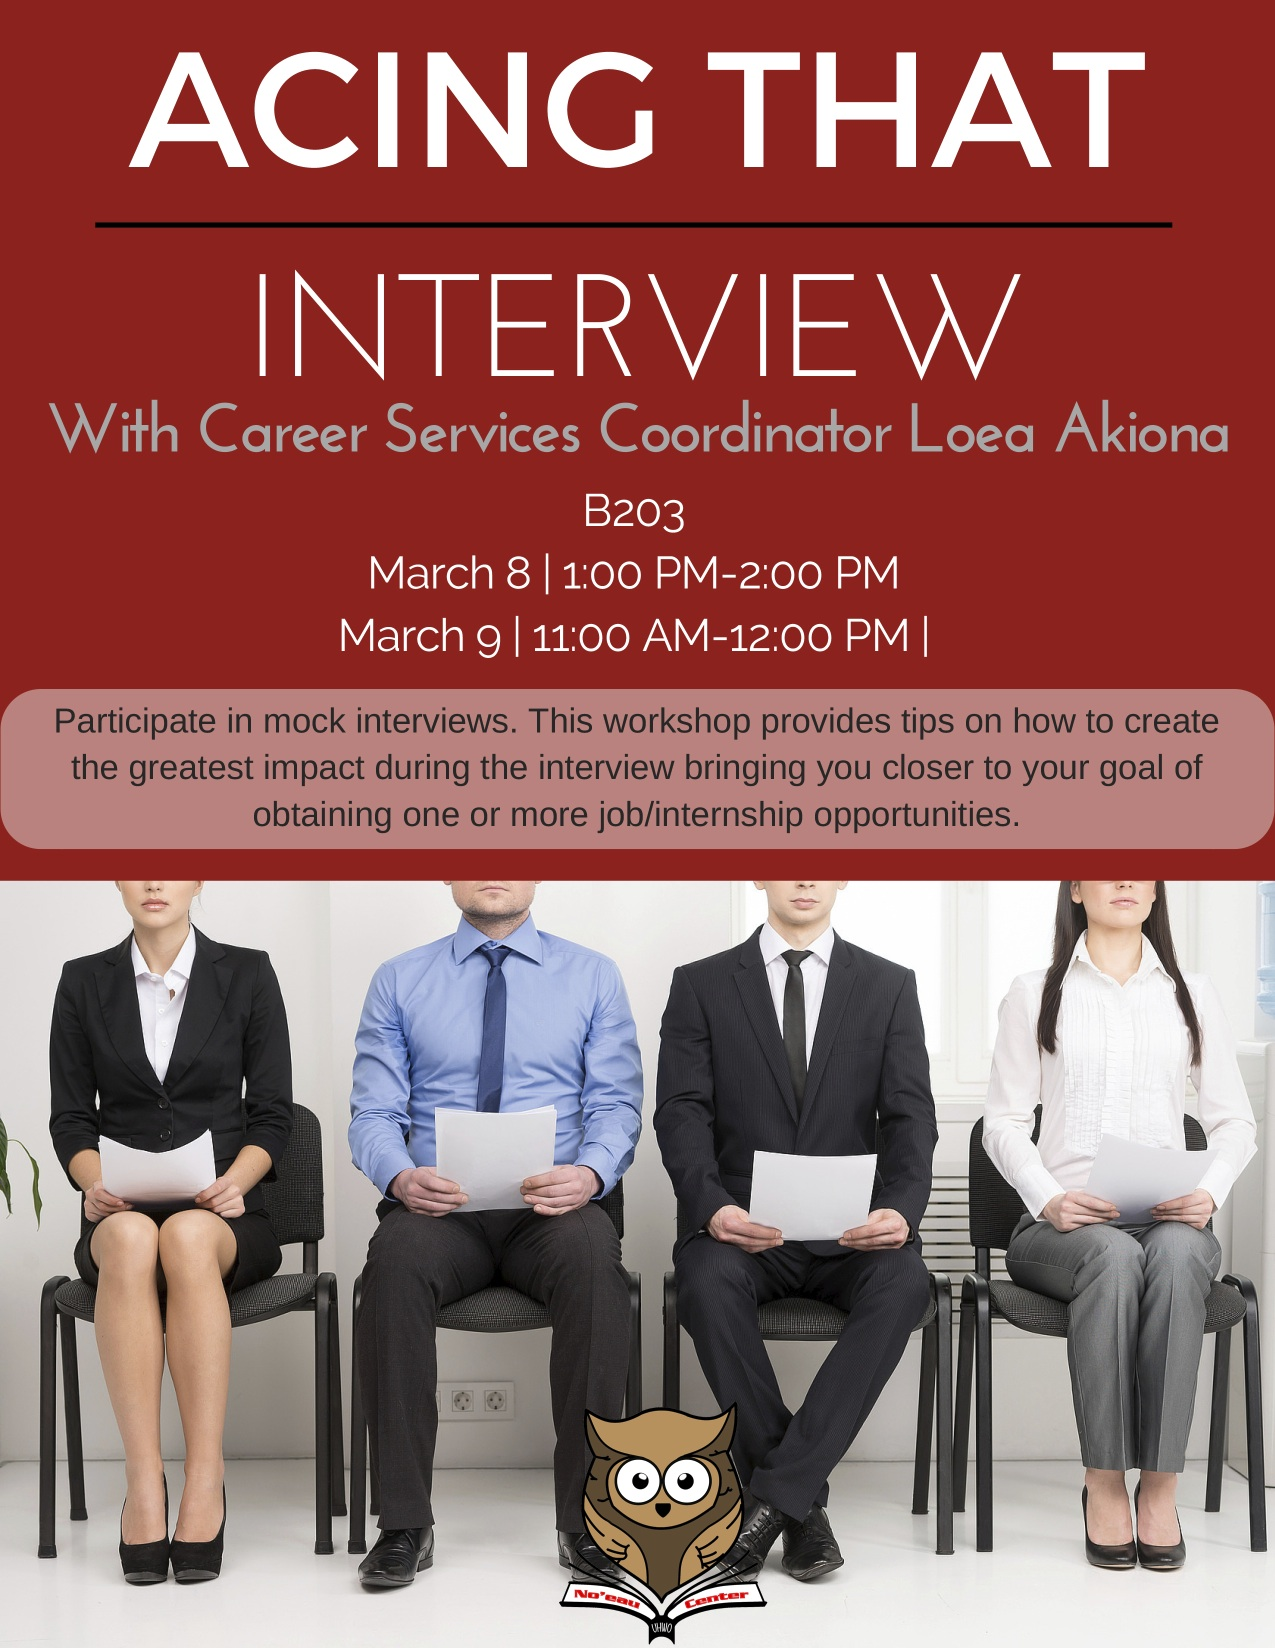 Acing that Interview (March 8 and 9)